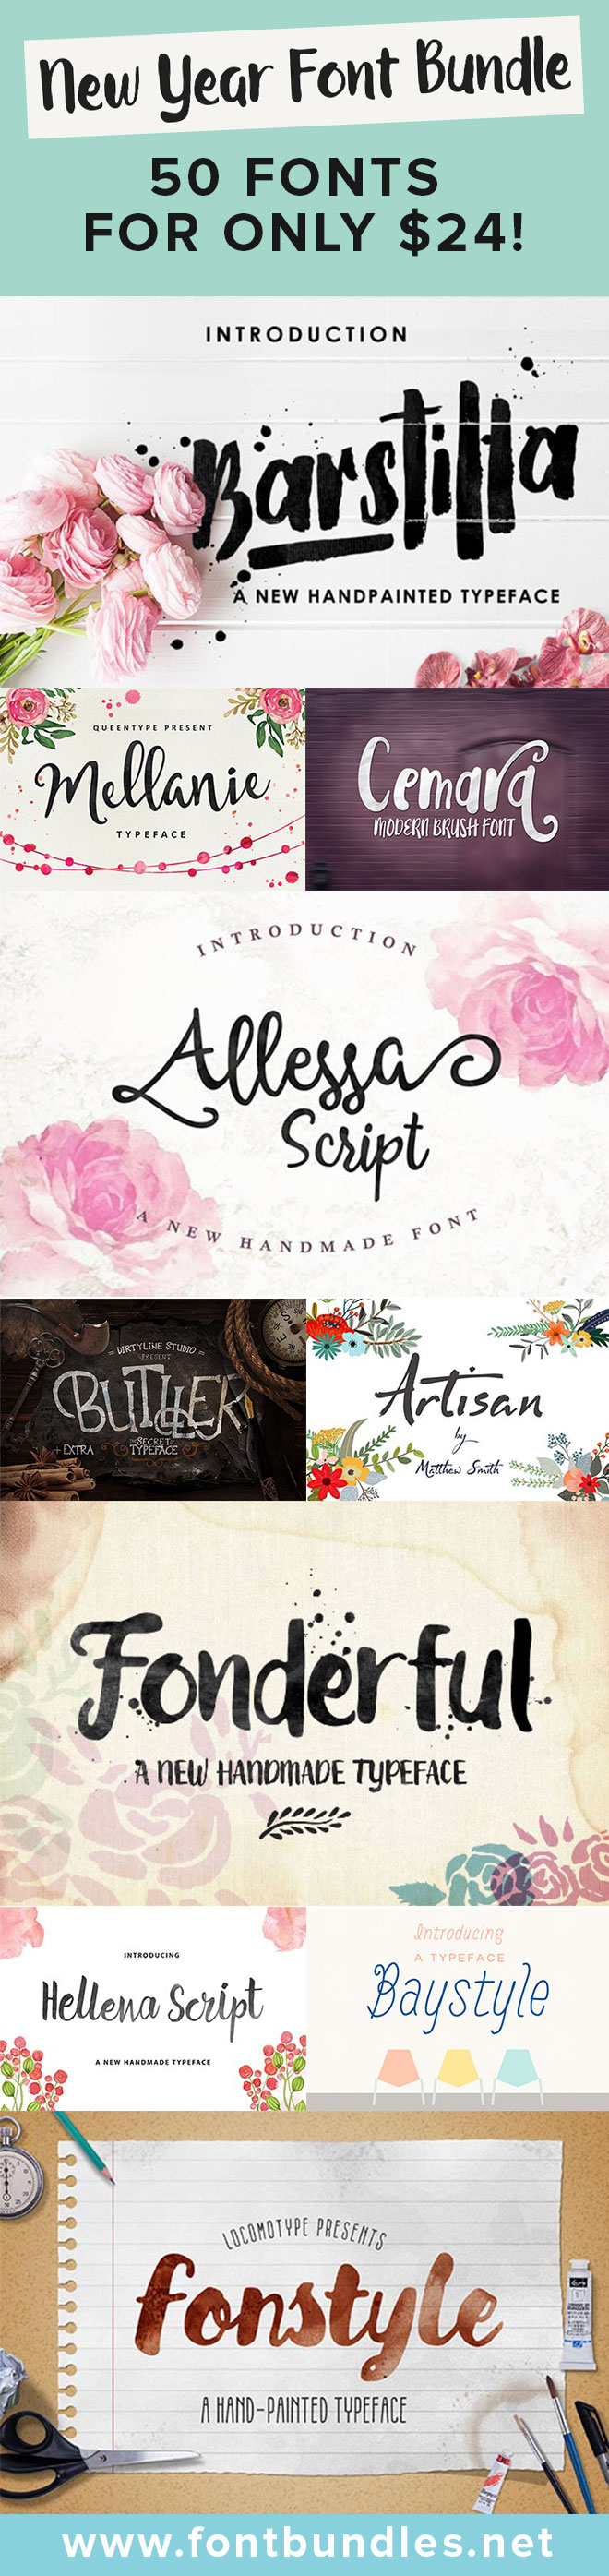 Check out this font bundle consisting of 50 fonts for only $24! That's a saving of 96%. Click here to view this deal